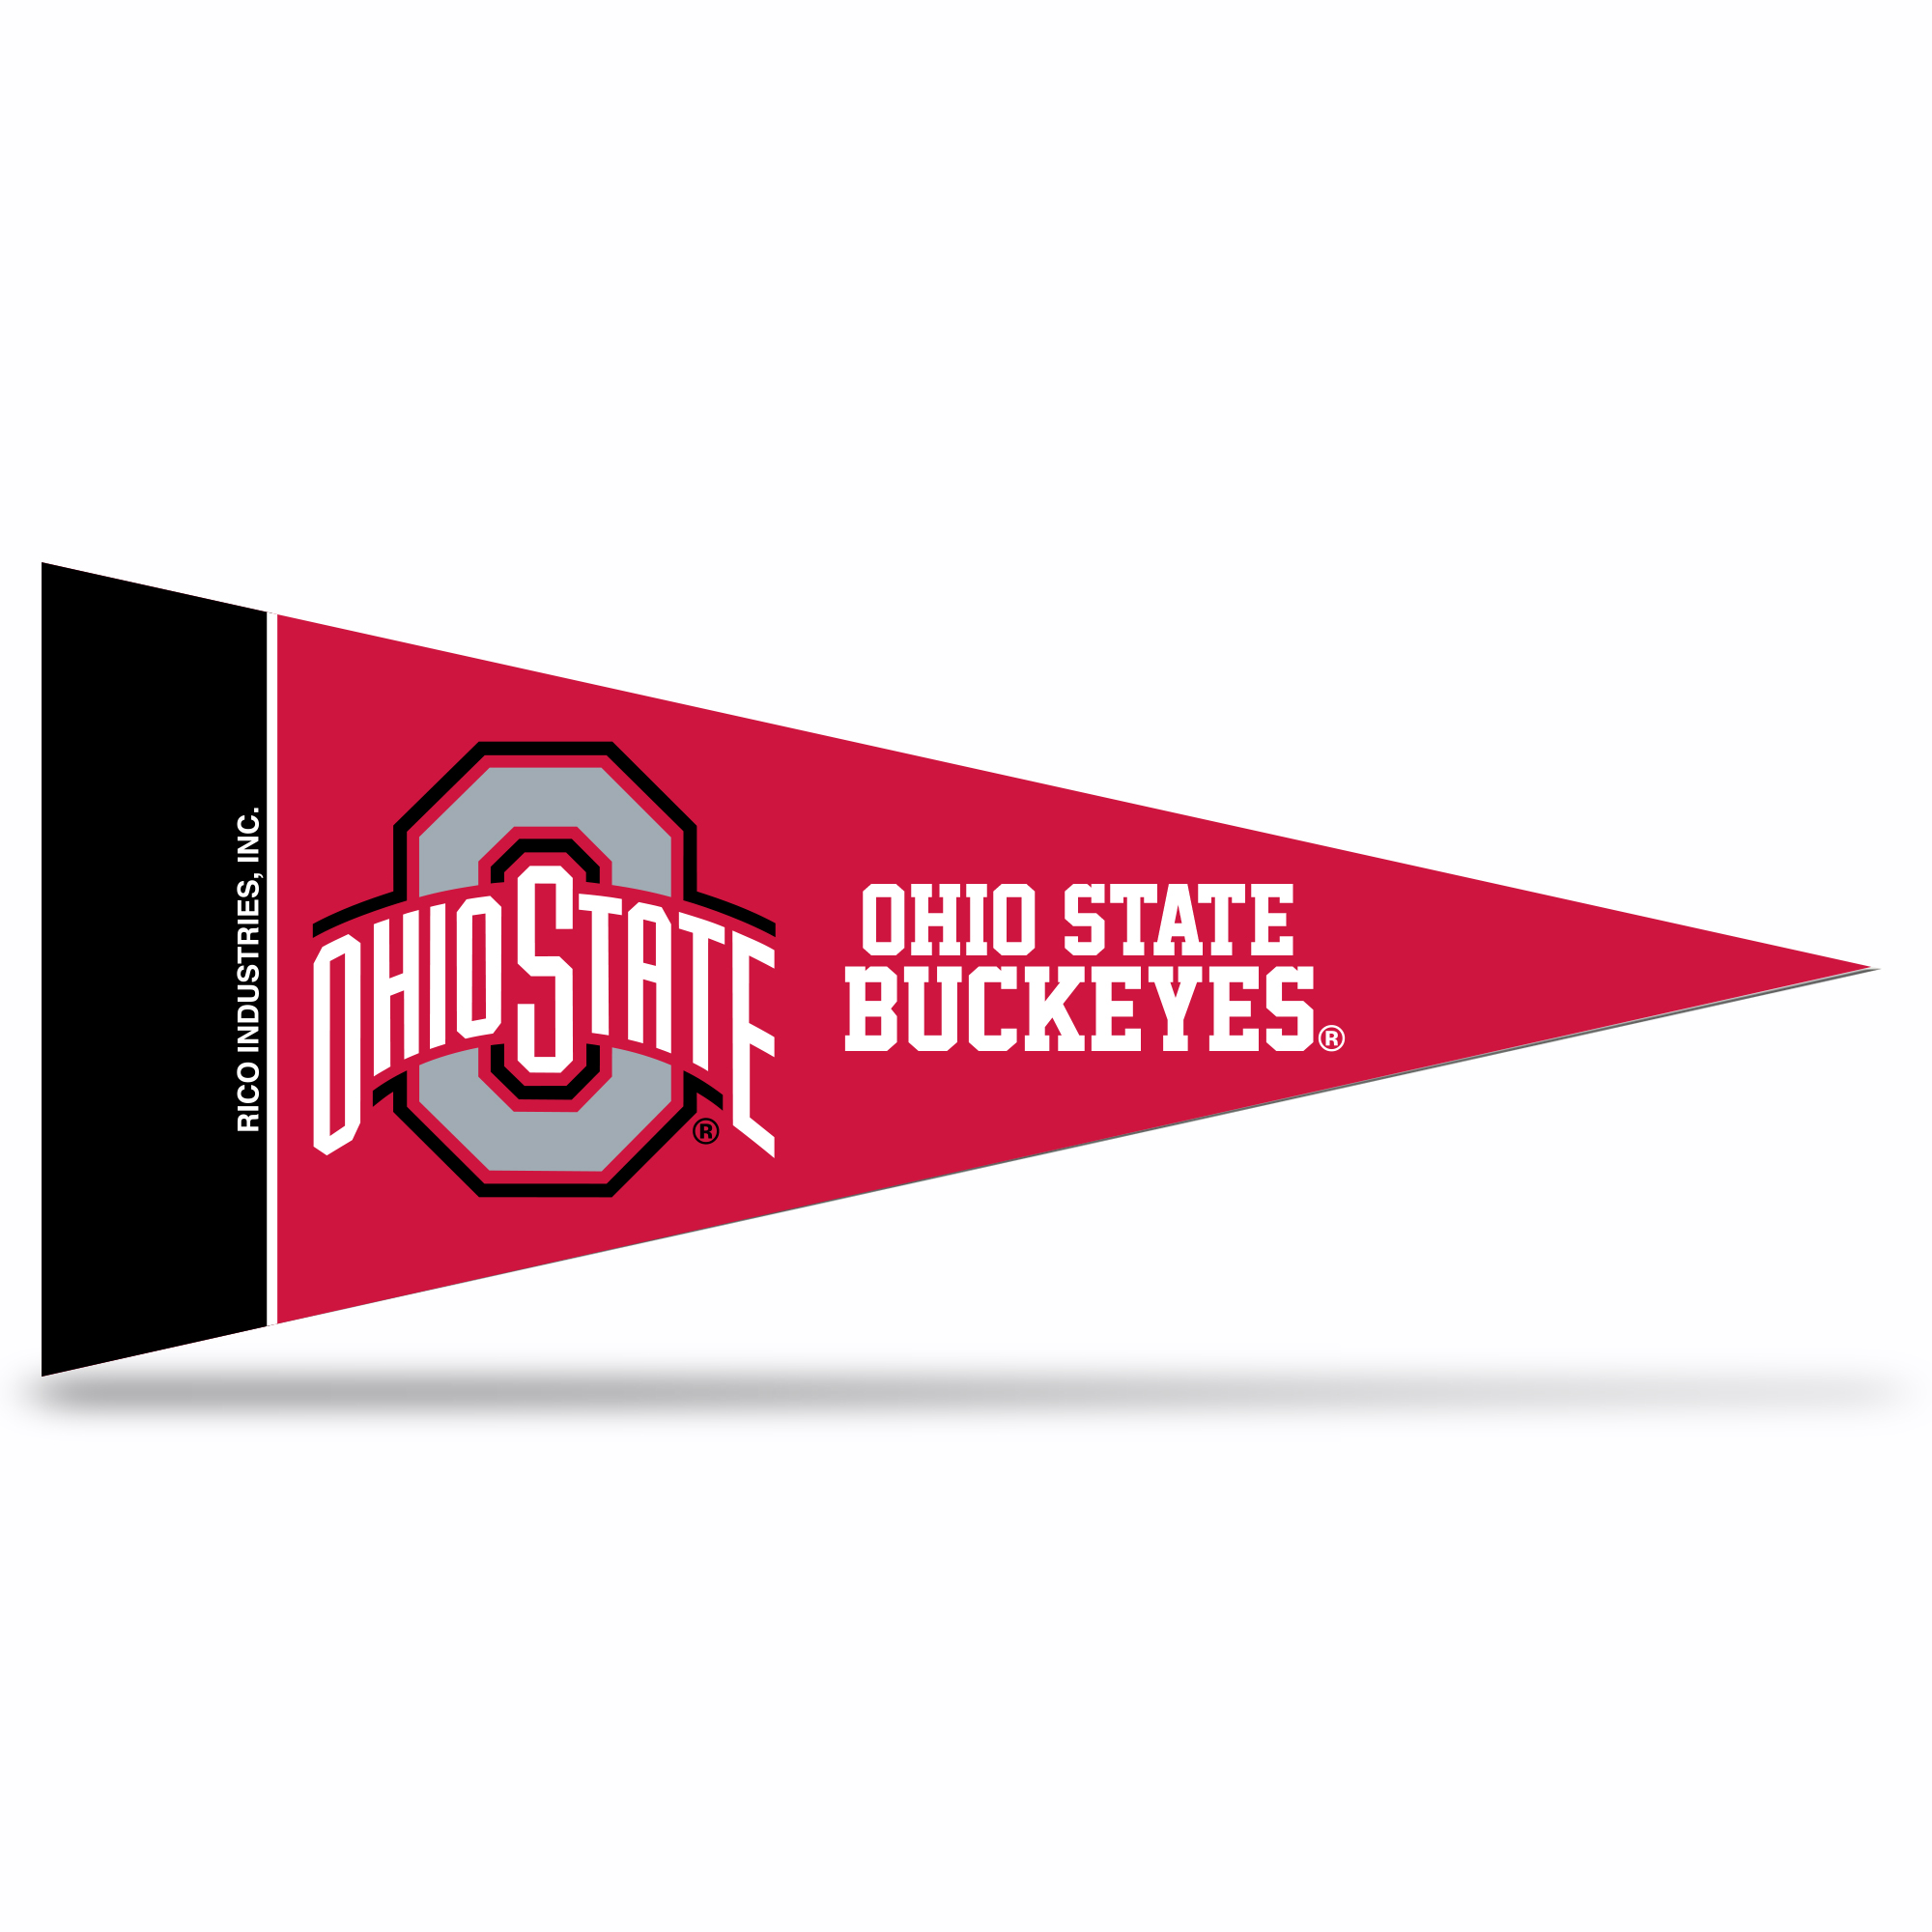 NCAA Ohio State University Mini Pennant 9X4 inch, felt